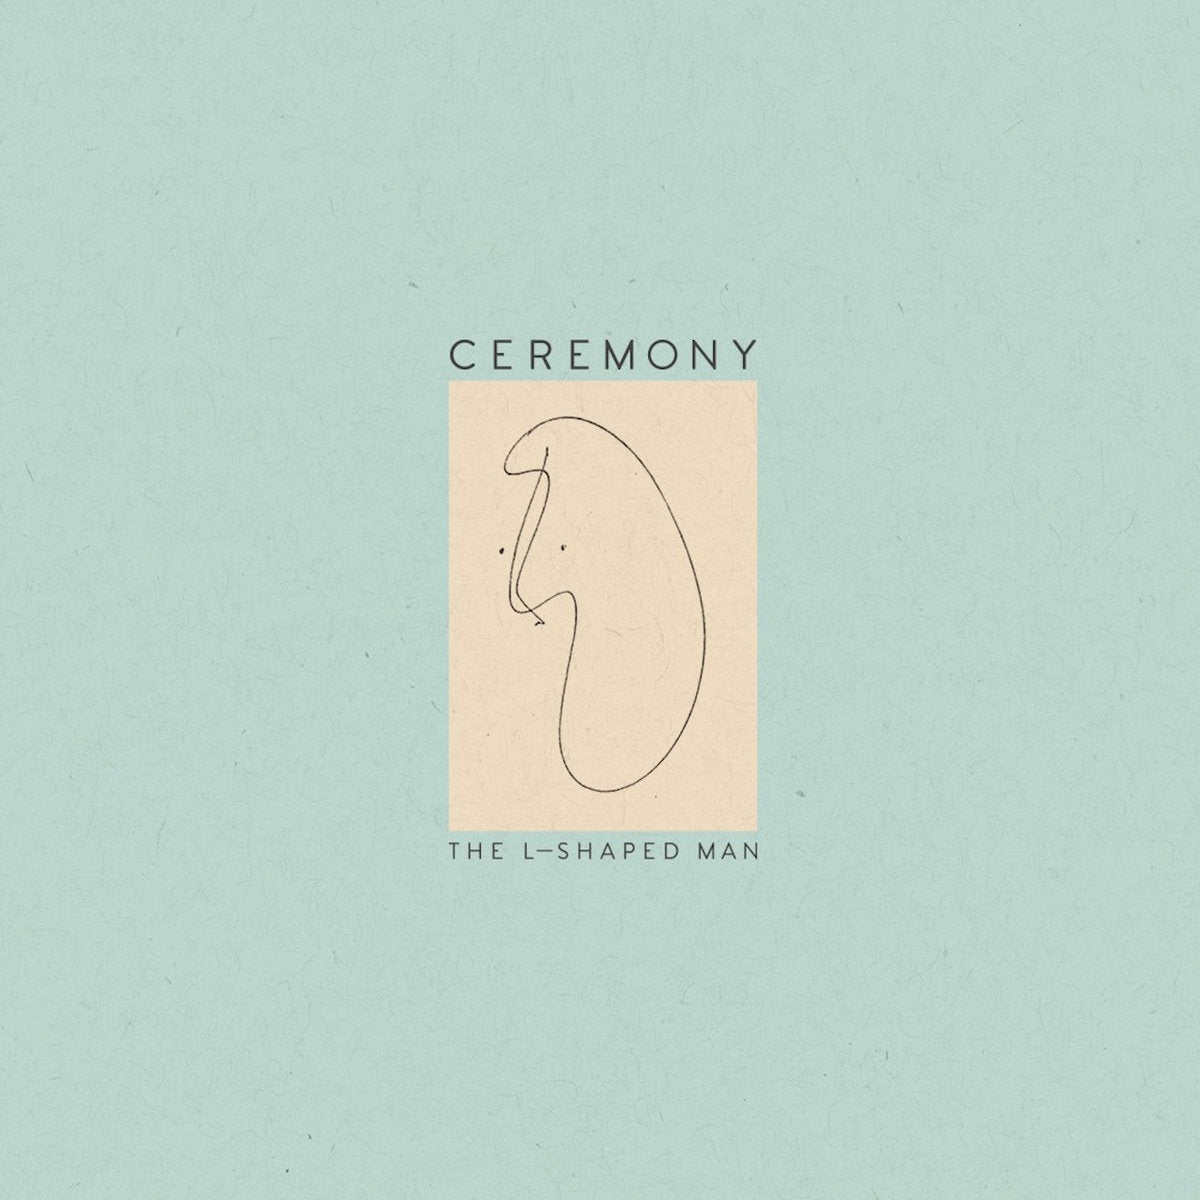 Ceremony - The L-Shaped Man LP - Vinyl